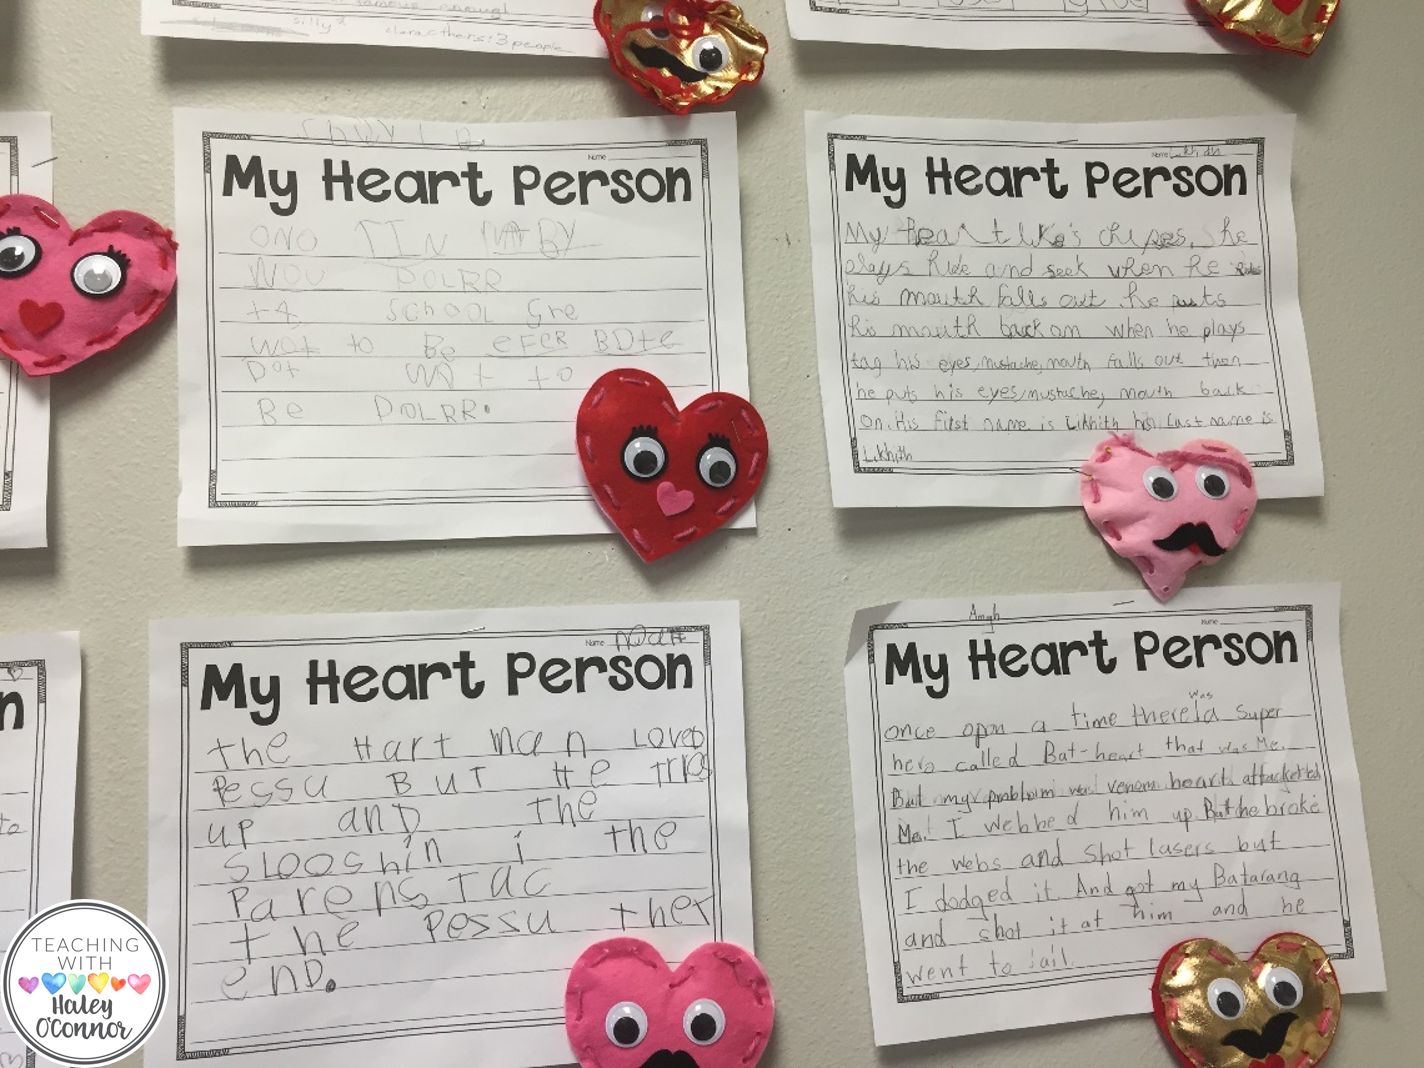 My Heart Person Writing for Valentine's Day